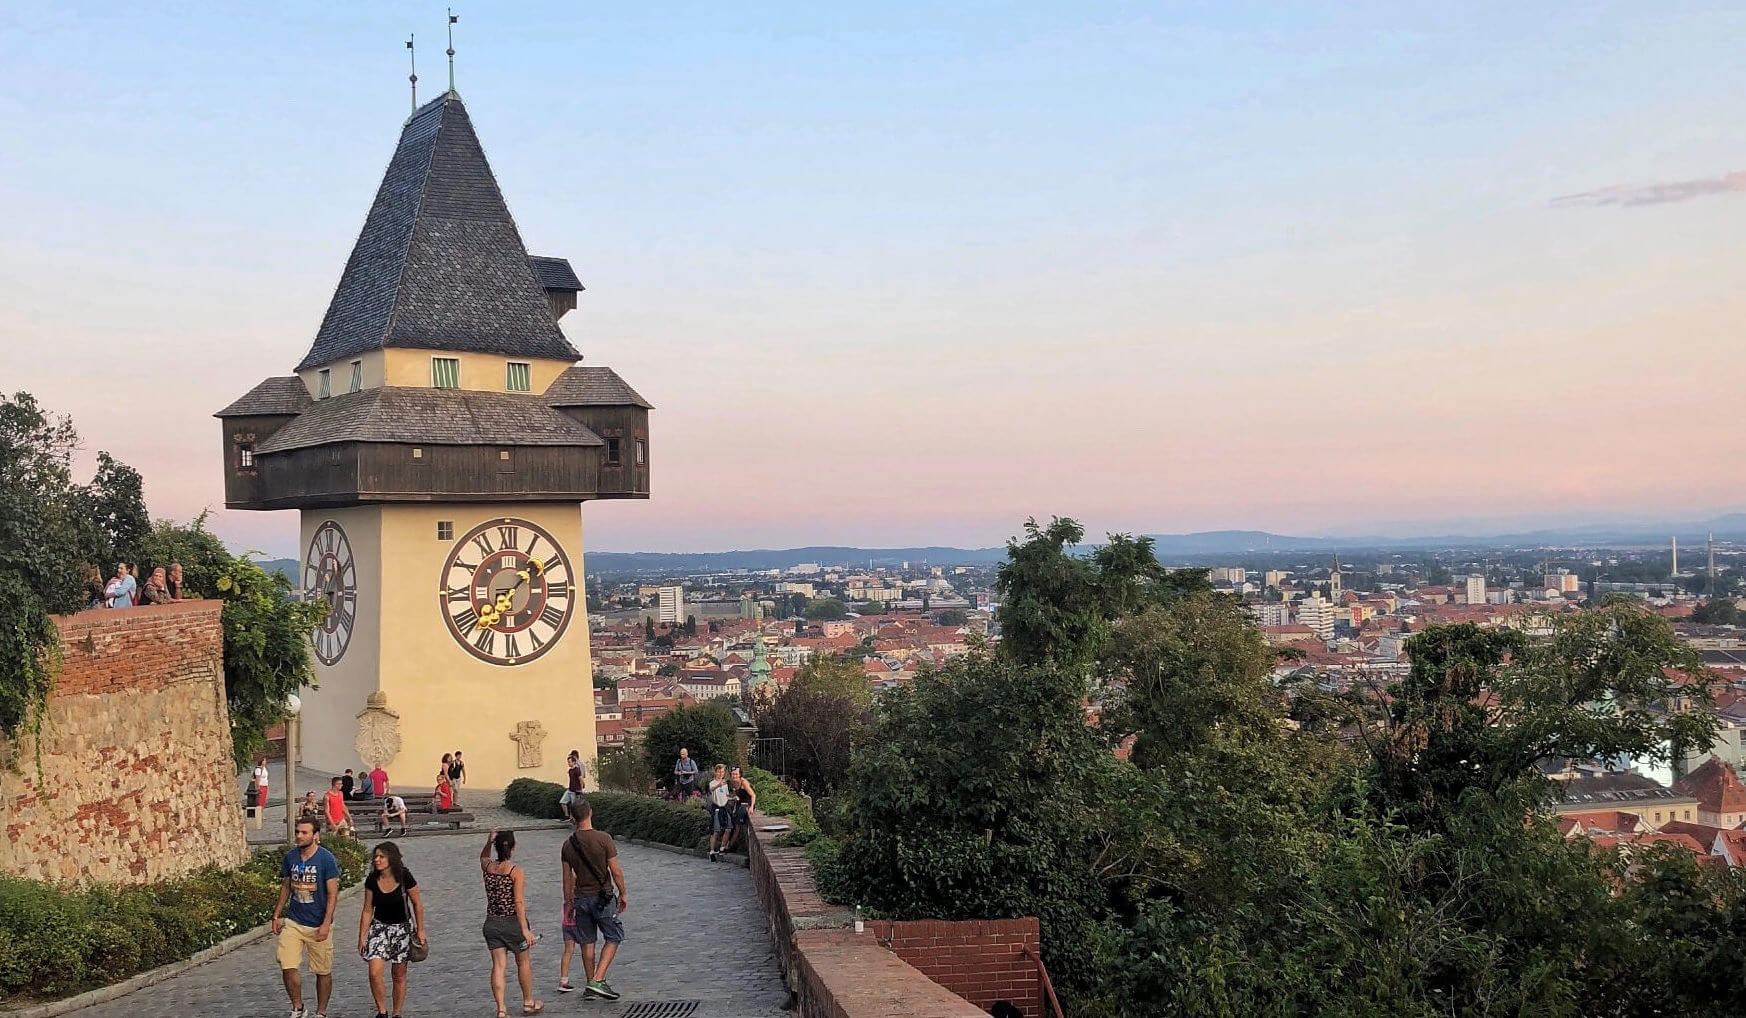 Feasting on the city of Graz - what to do and where to eat in Austria's Culinary Capital